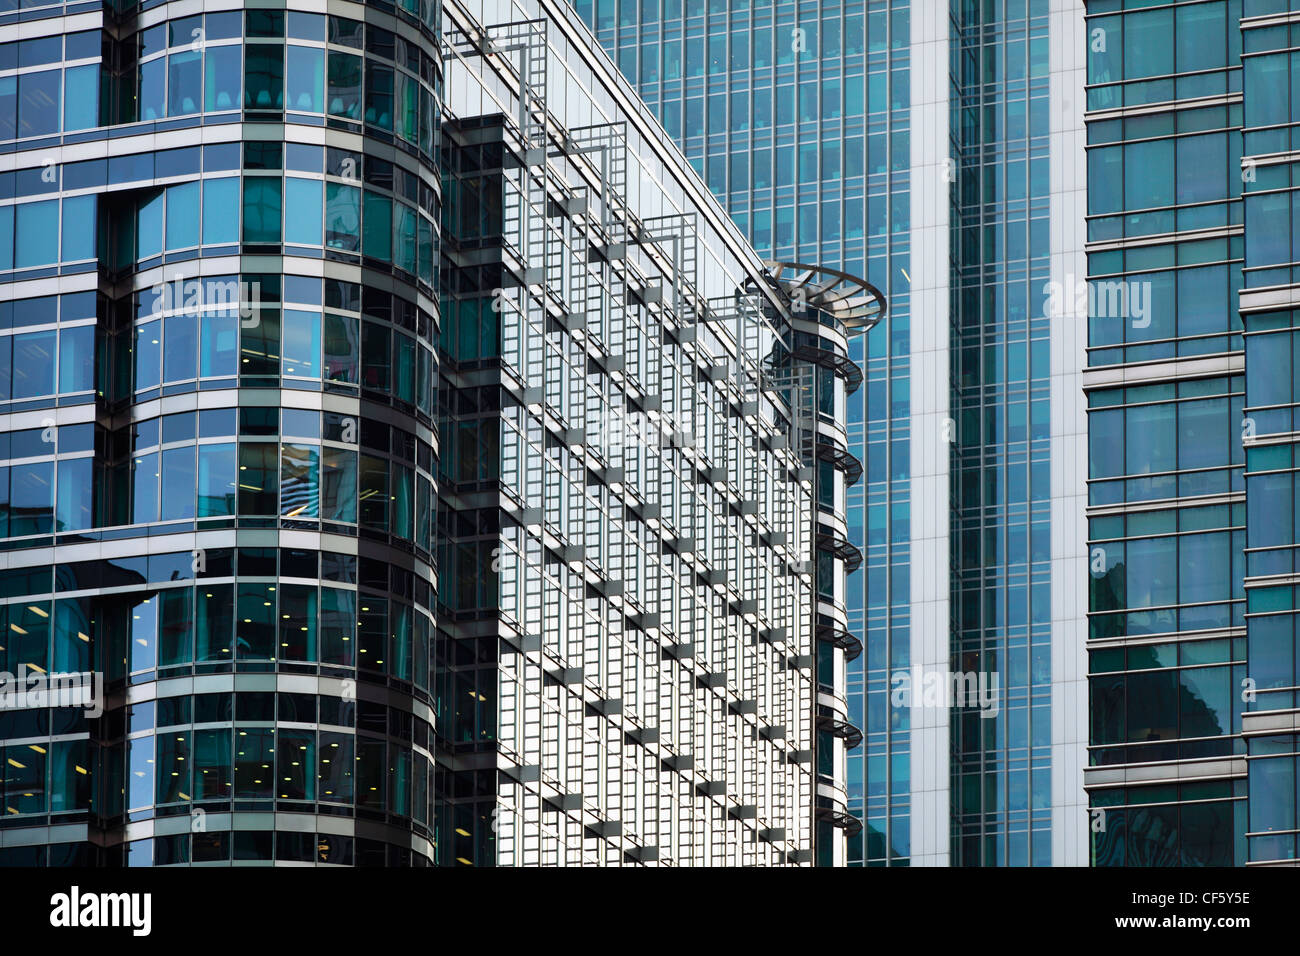 Bright, gleaming glass clad office buildings in Canary Wharf. - Stock Image